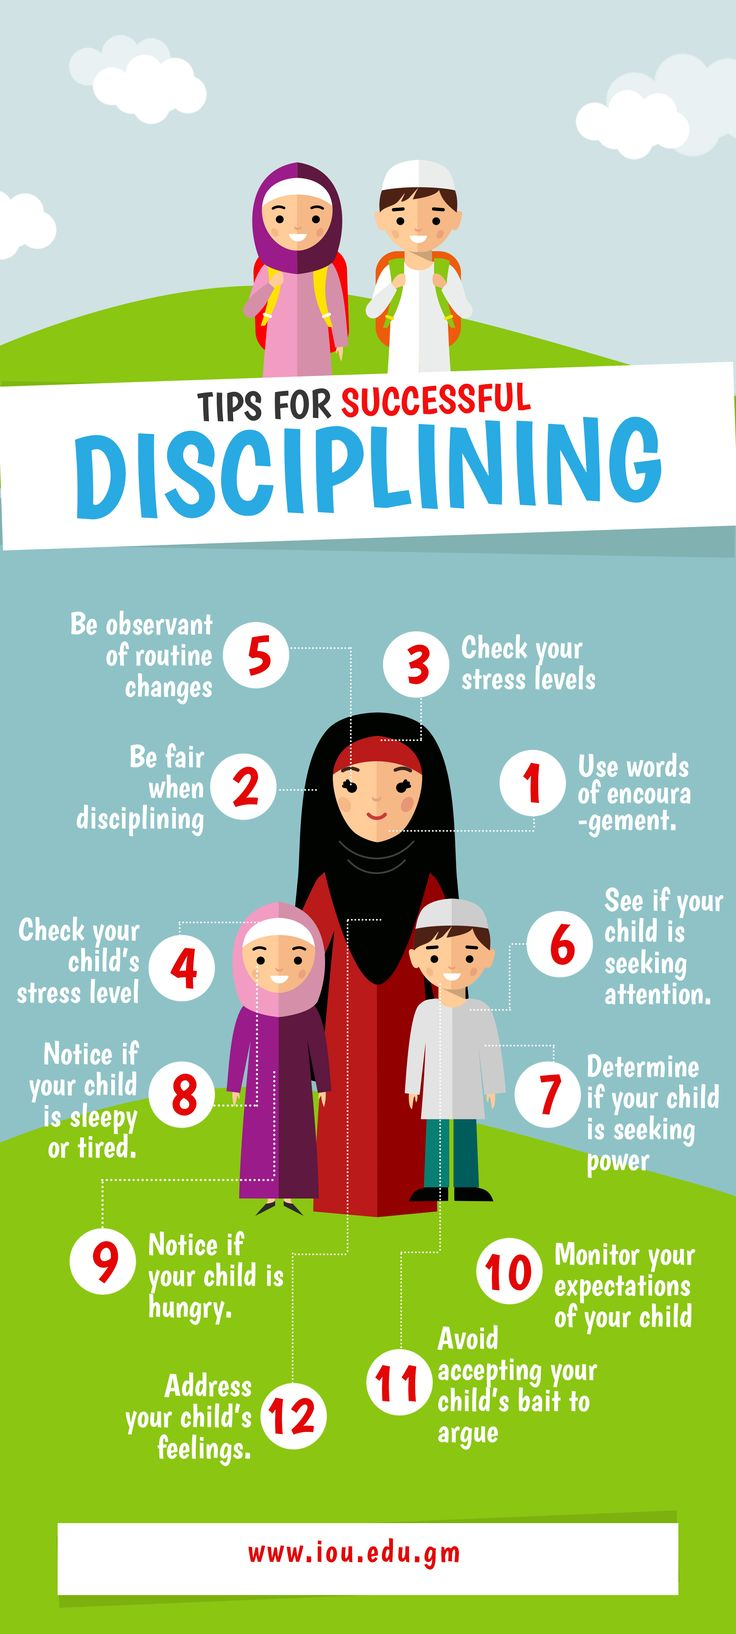 Islamic Parenting tips